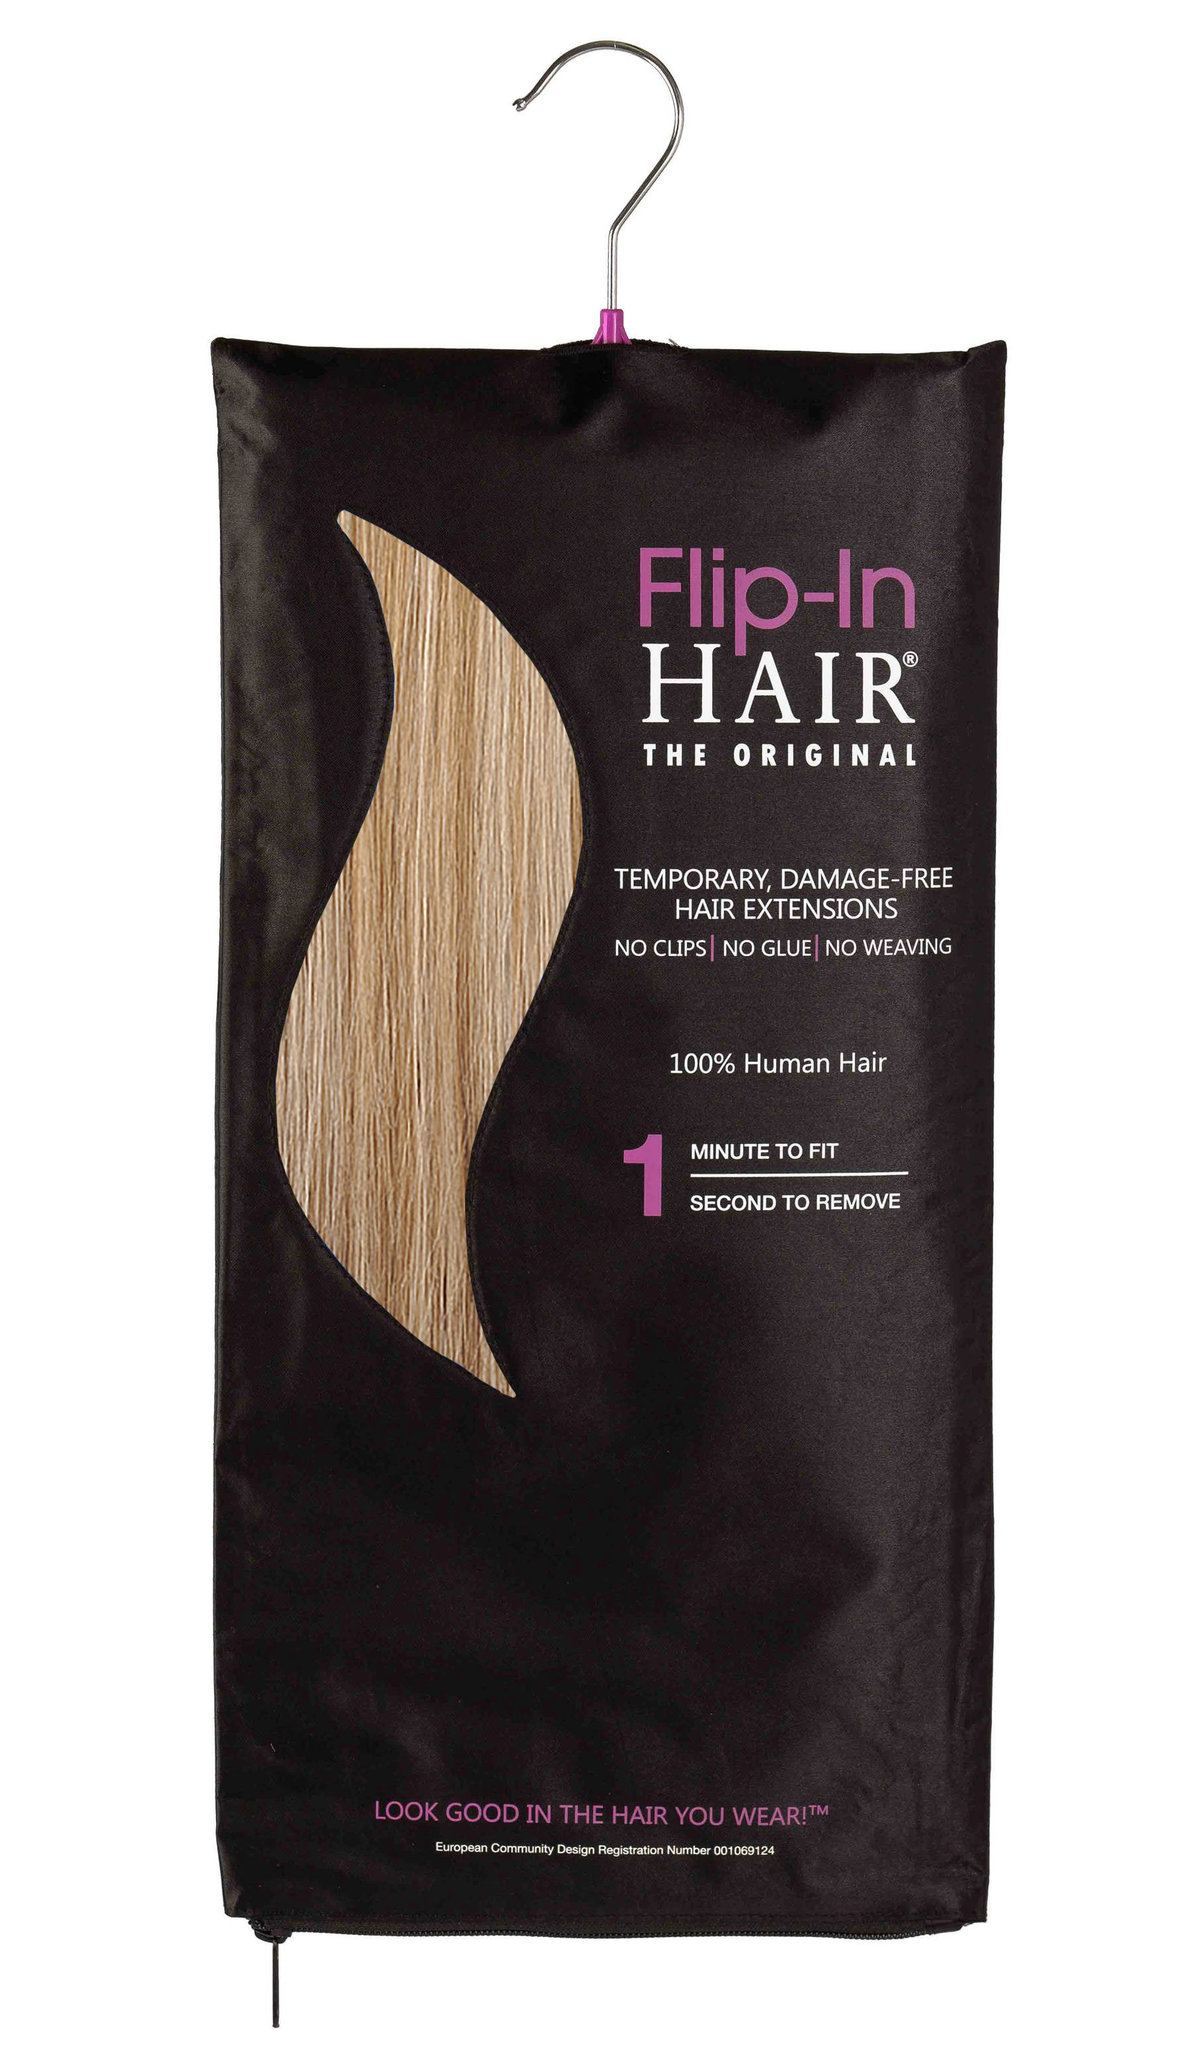 Flip-In Hair Original 10-16